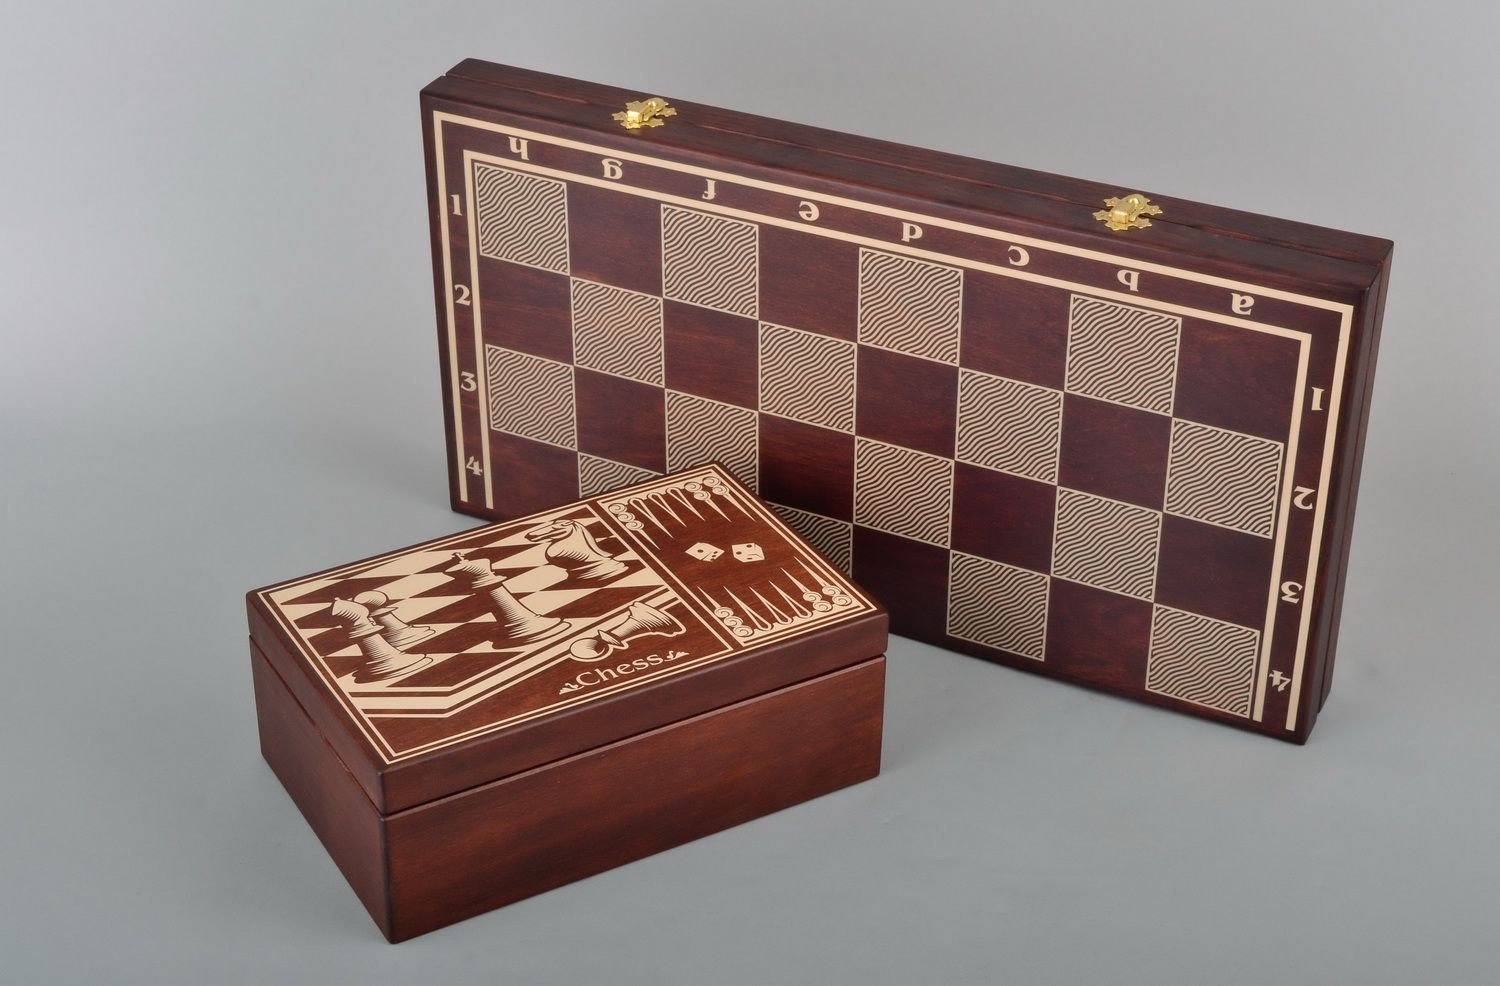 A Set of Brown Handmade Wooden Checkers, Chess and Backgammon Board Game with Accessories -Portable Travel Folding Carved Suitcase with Playing Pieces by Madeheart